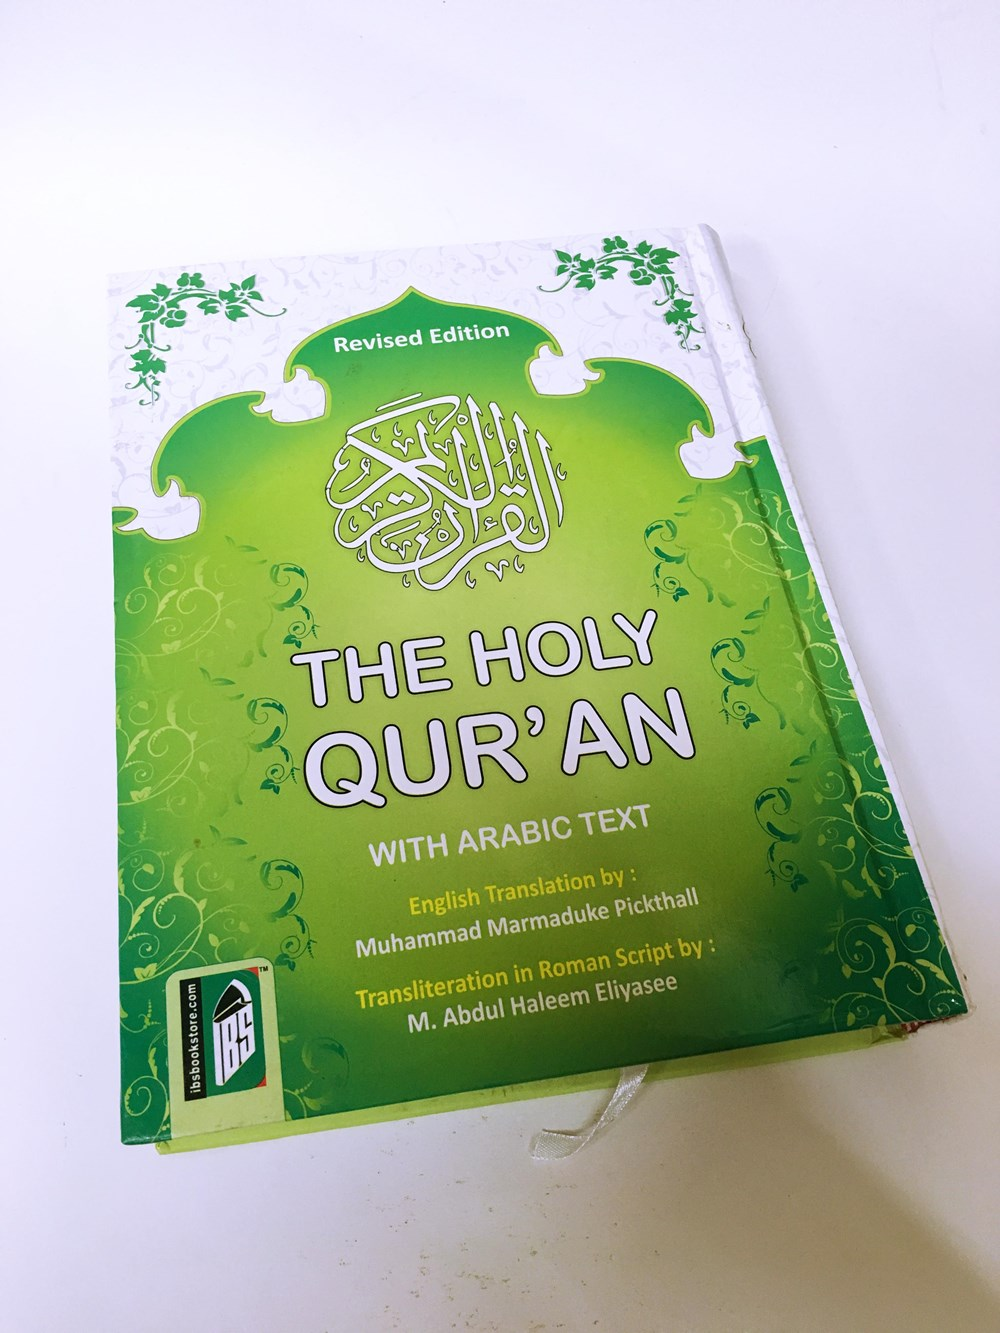 9788172310073, Quran, Pocket size Quran, Quraan, Koran, English